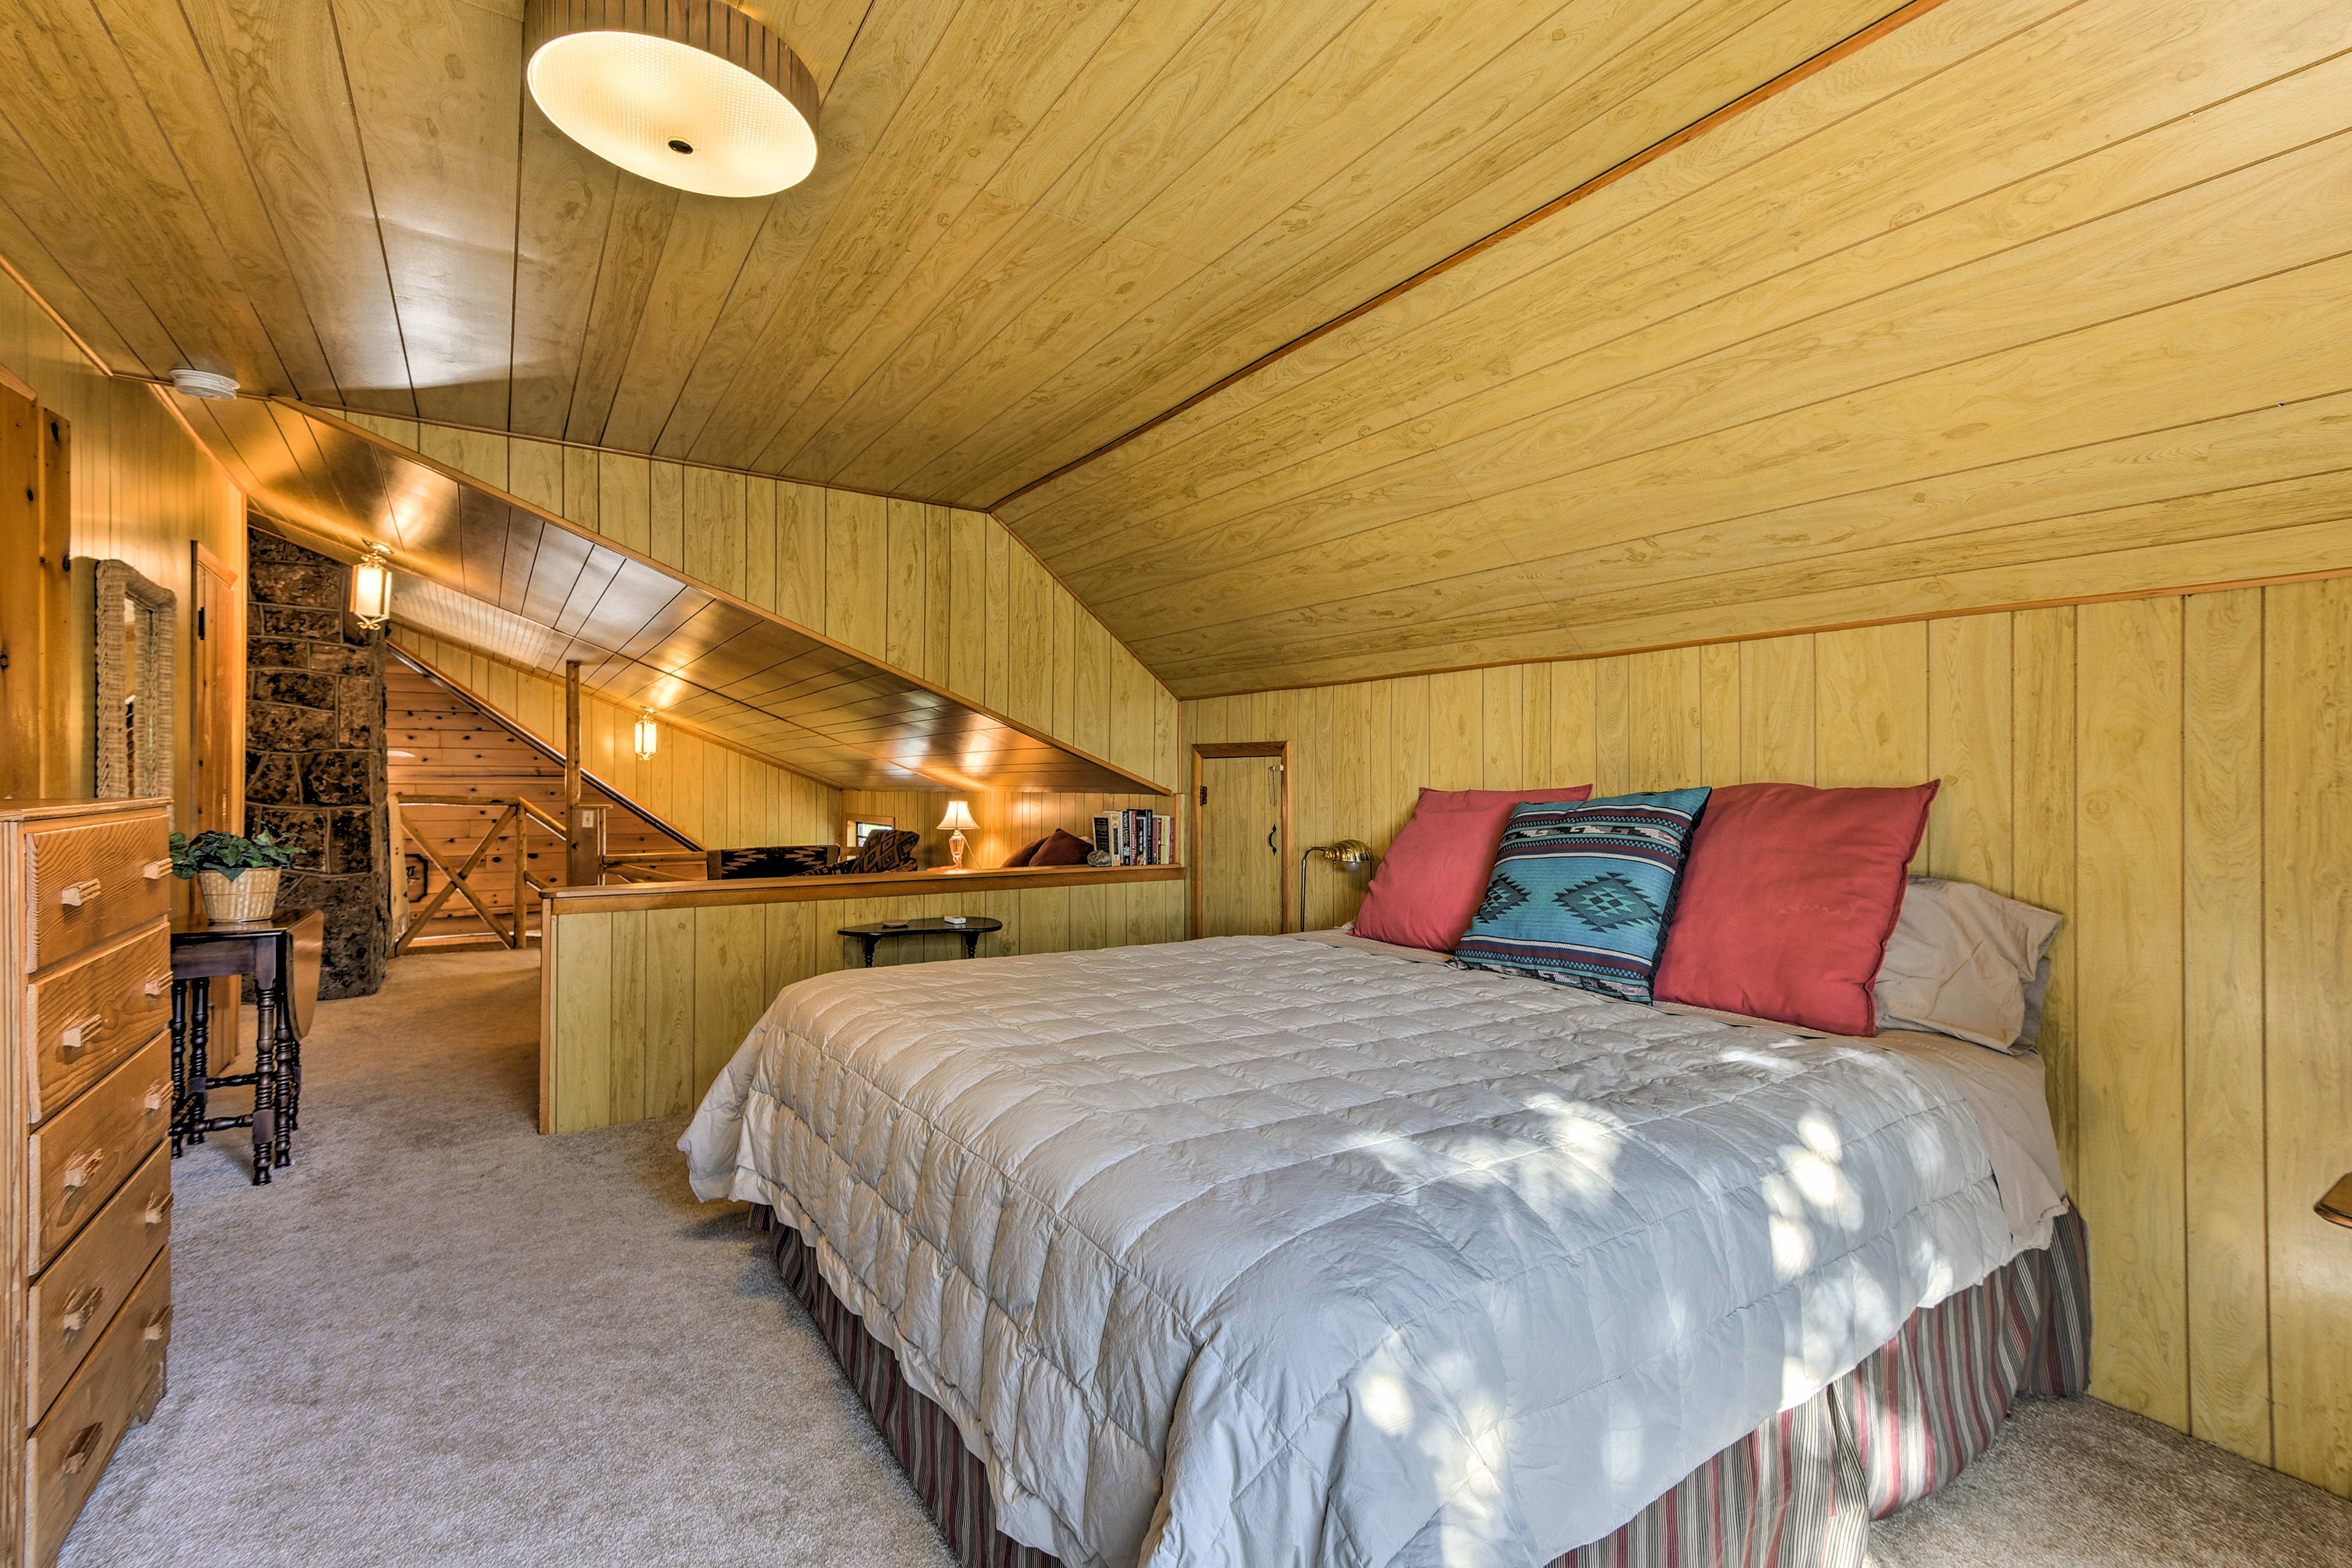 With both a twin bed and king bed, up to 3 guests can sleep in the loft.